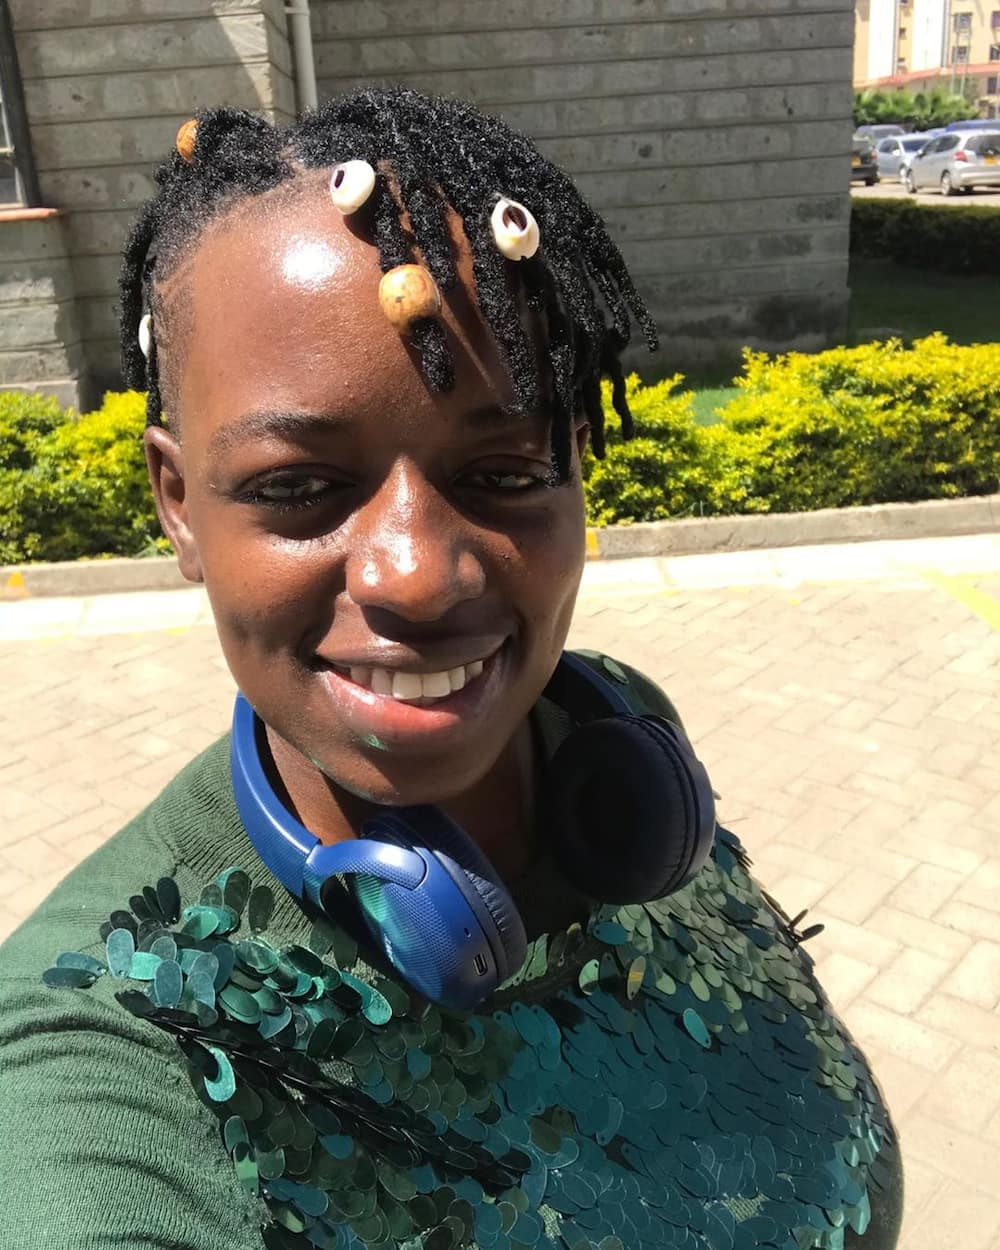 """HIV activist Phenny Awiti quits social media to focus on family: """"My time is up!"""""""